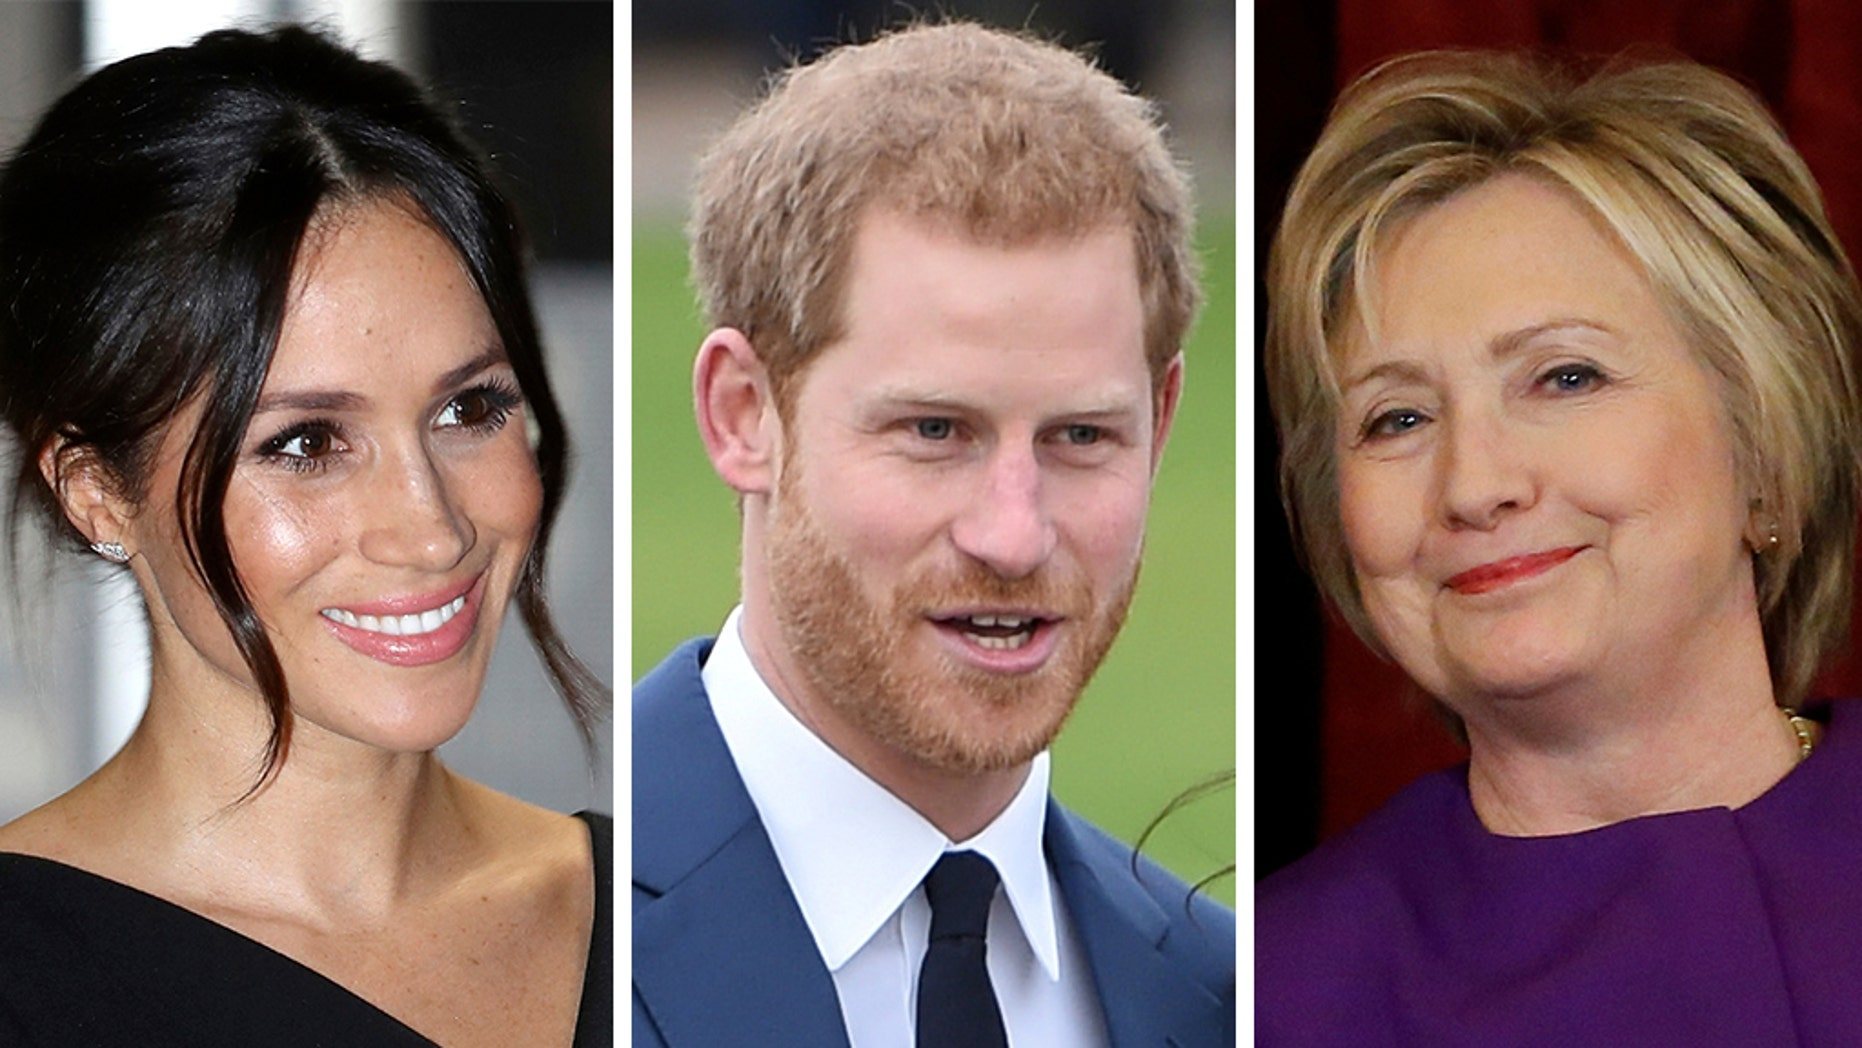 Meghan Markle and Prince Harry have hired Hillary Clinton's former presidential campaign senior adviser to head their communications team. (AP/Reuters, File